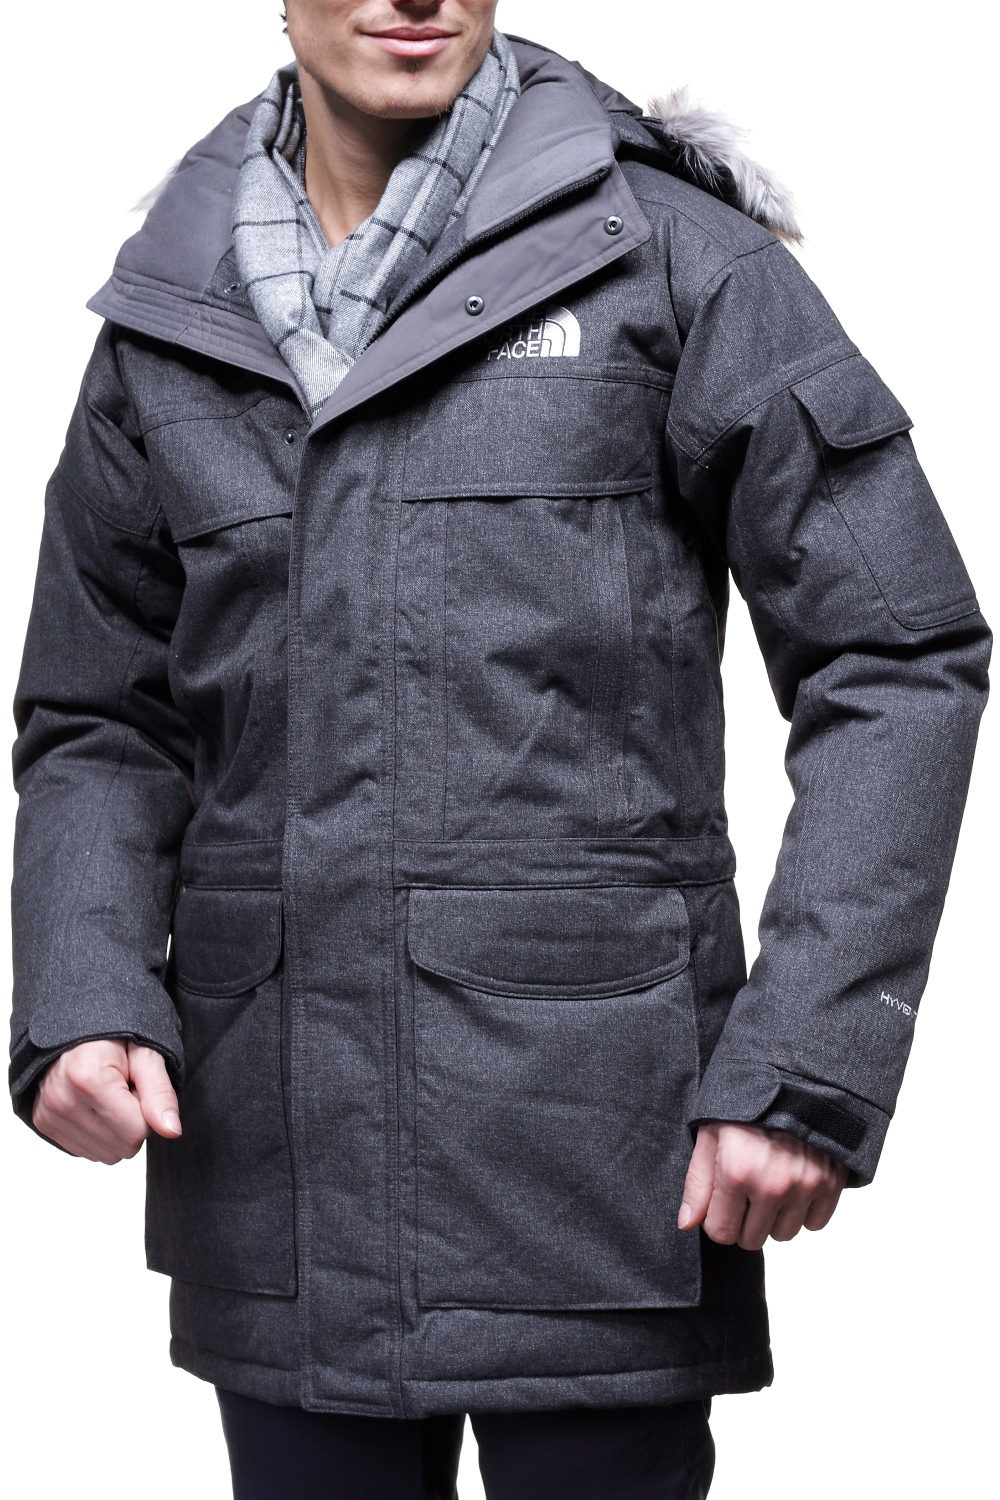 http://www.leadermode.com/64636/the-north-face-mcmurdo-parka-anthracite.jpg